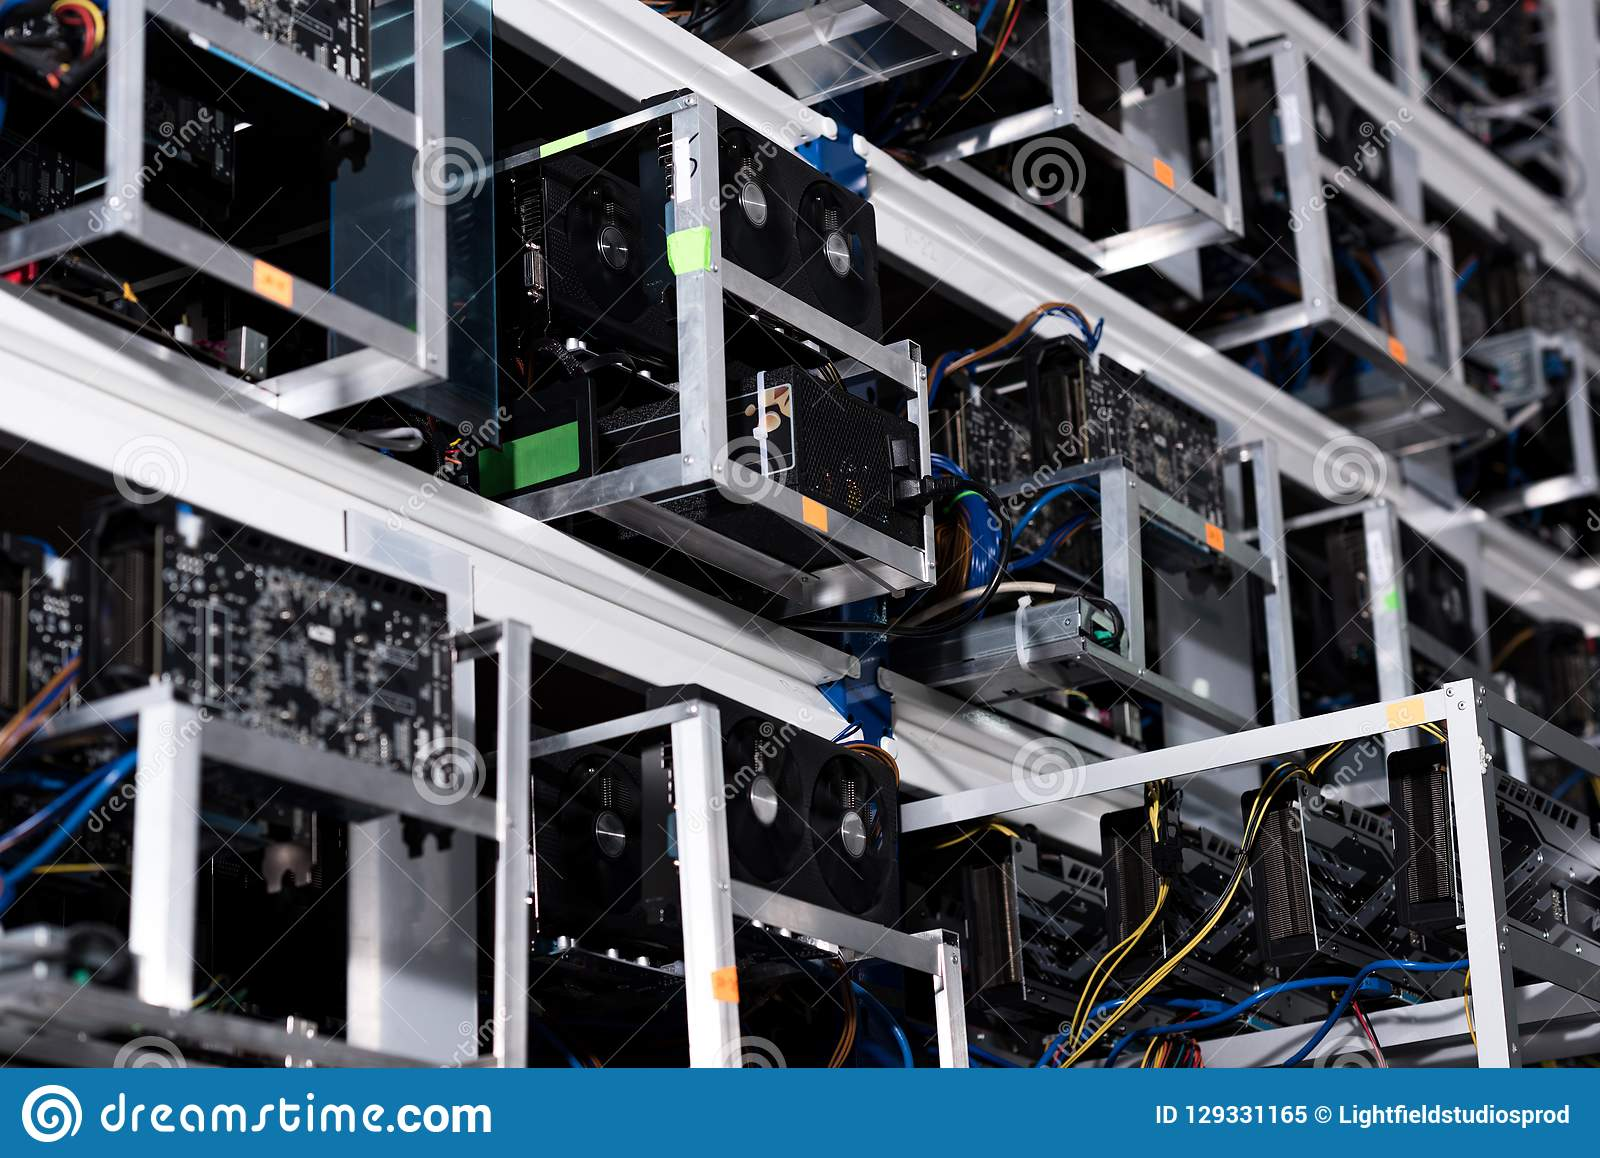 Bottom view of shelves with equipment at ethereum mining farm royalty free stock photo